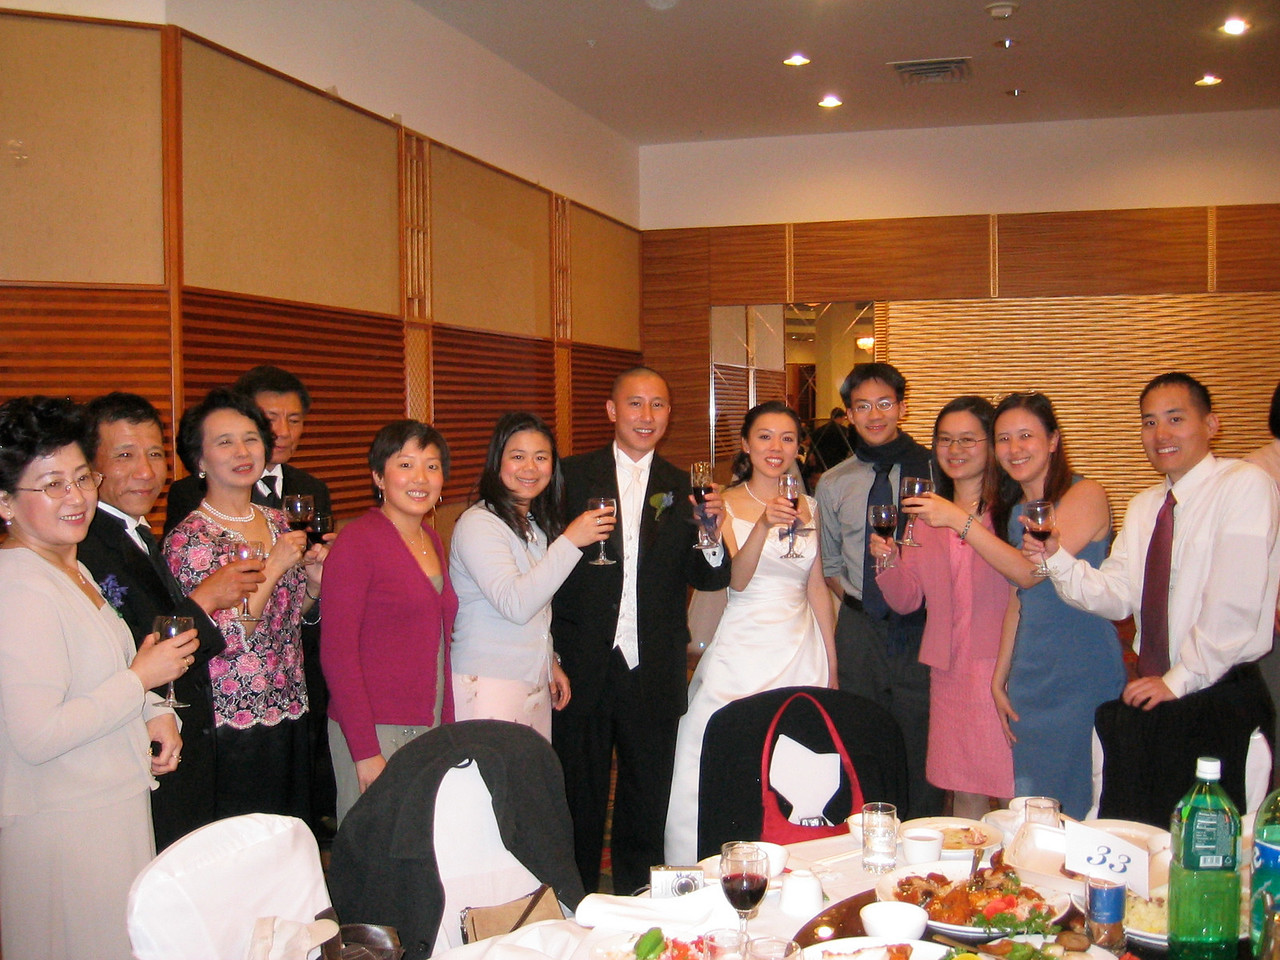 2005 04 23 Saturday - Table toast 3 @ Mike & Amy Lee's wedding